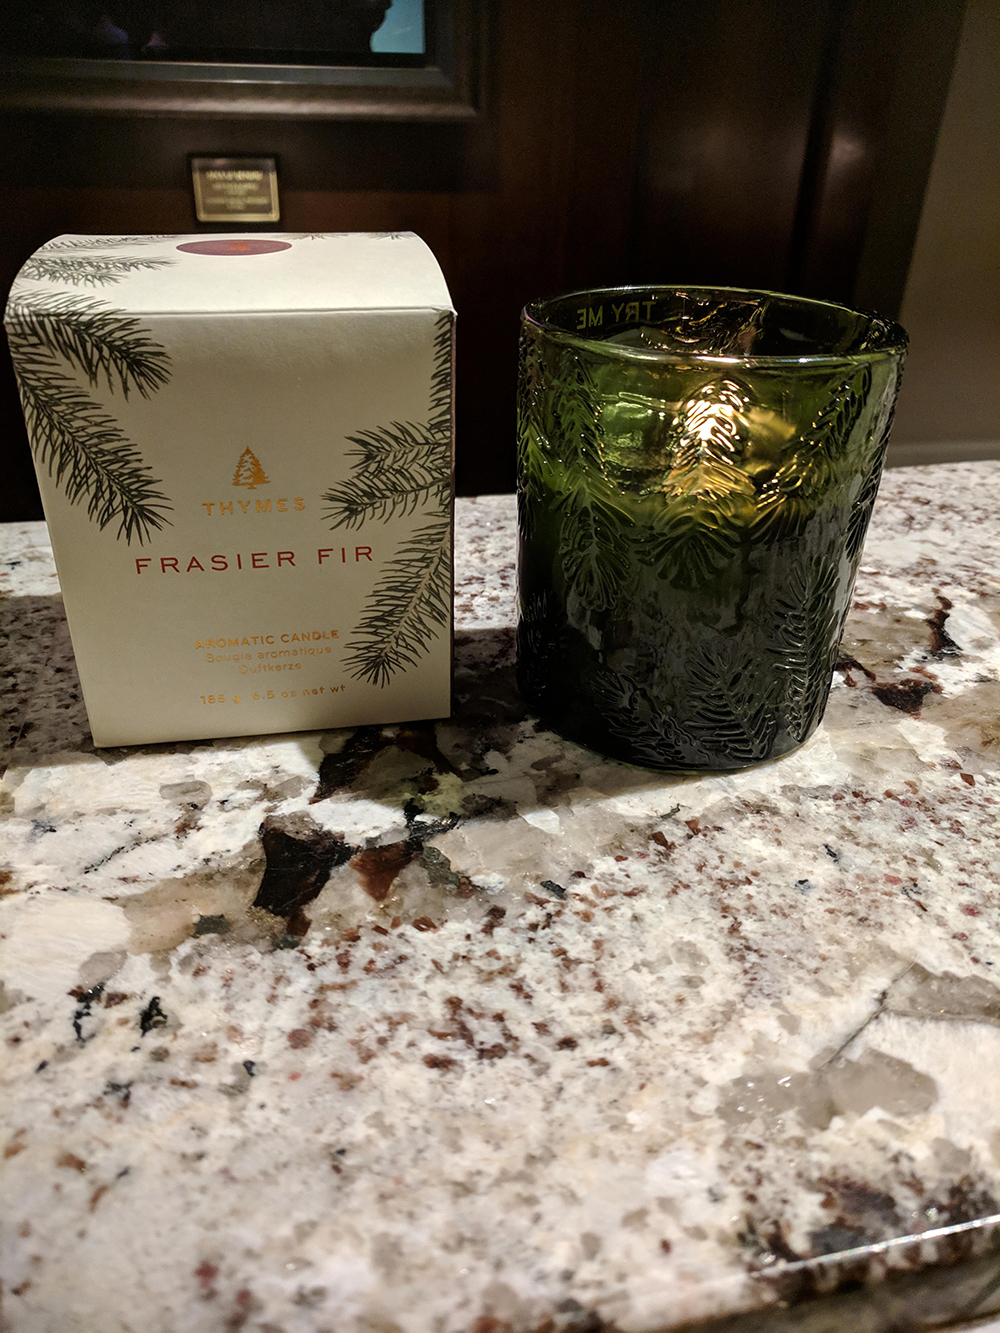 A Thyme's Frasier Fir candle burns at the front desk, creating the perfect ambiance.